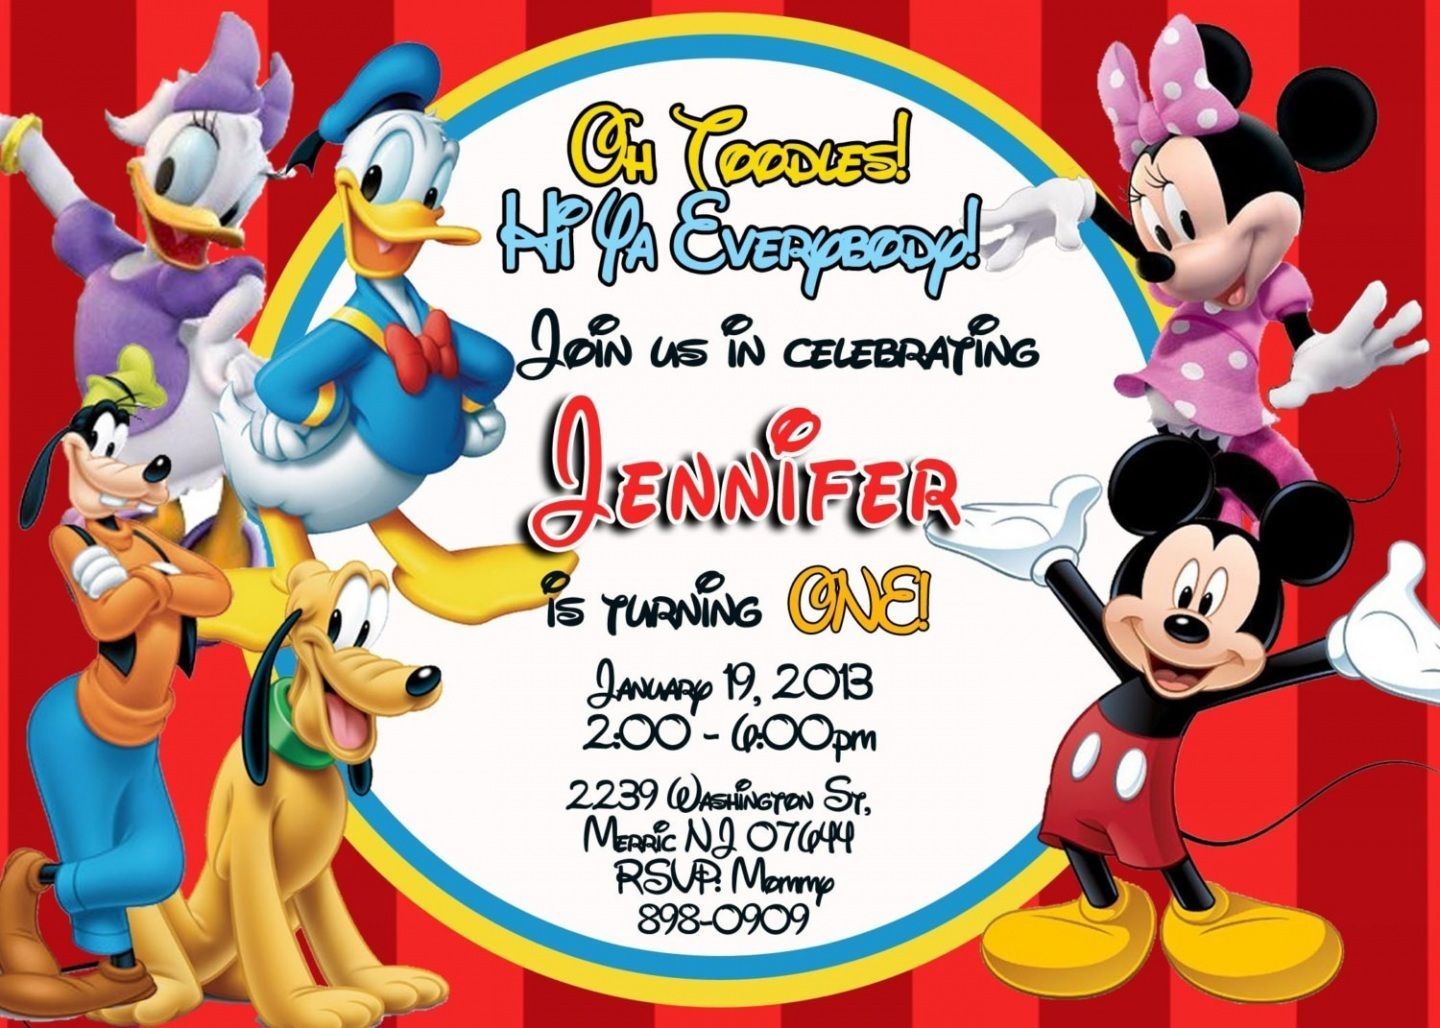 photograph relating to Printable Mickey Mouse Invitations called Totally free Printable Mickey Mouse Clubhouse Invites Template